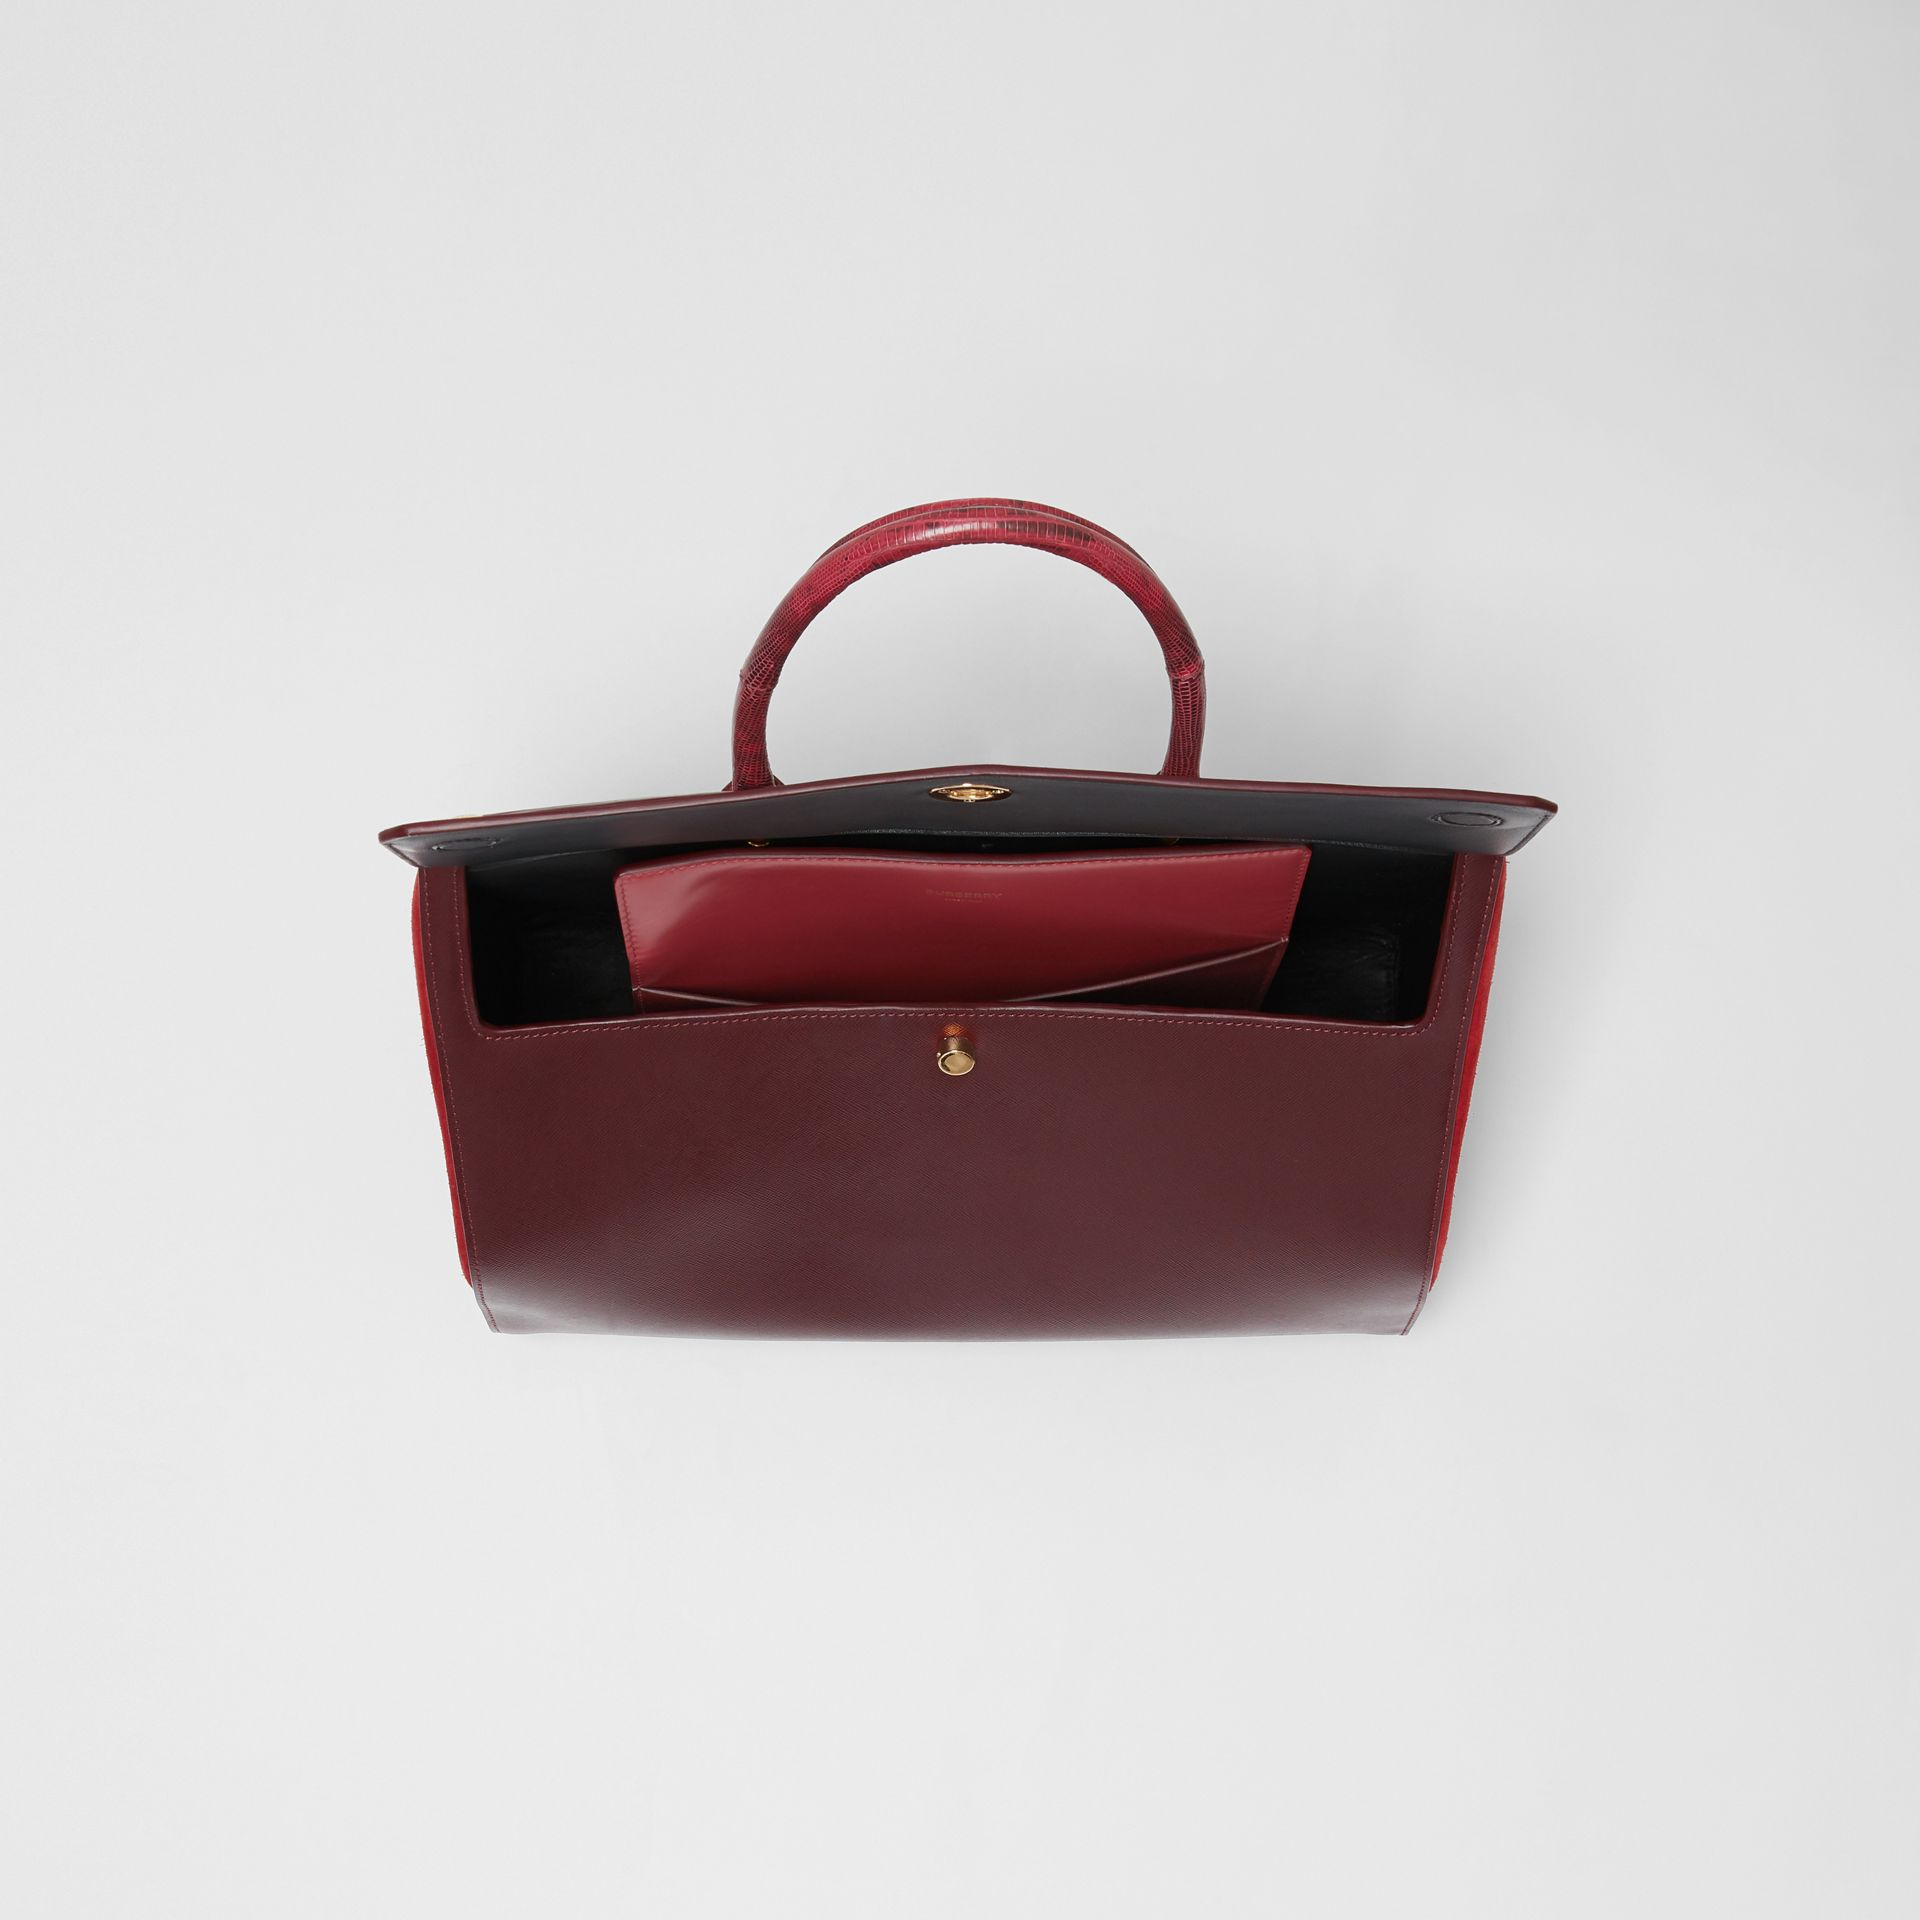 Medium Leather and Suede Elizabeth Bag in Crimson - Women | Burberry Australia - gallery image 4